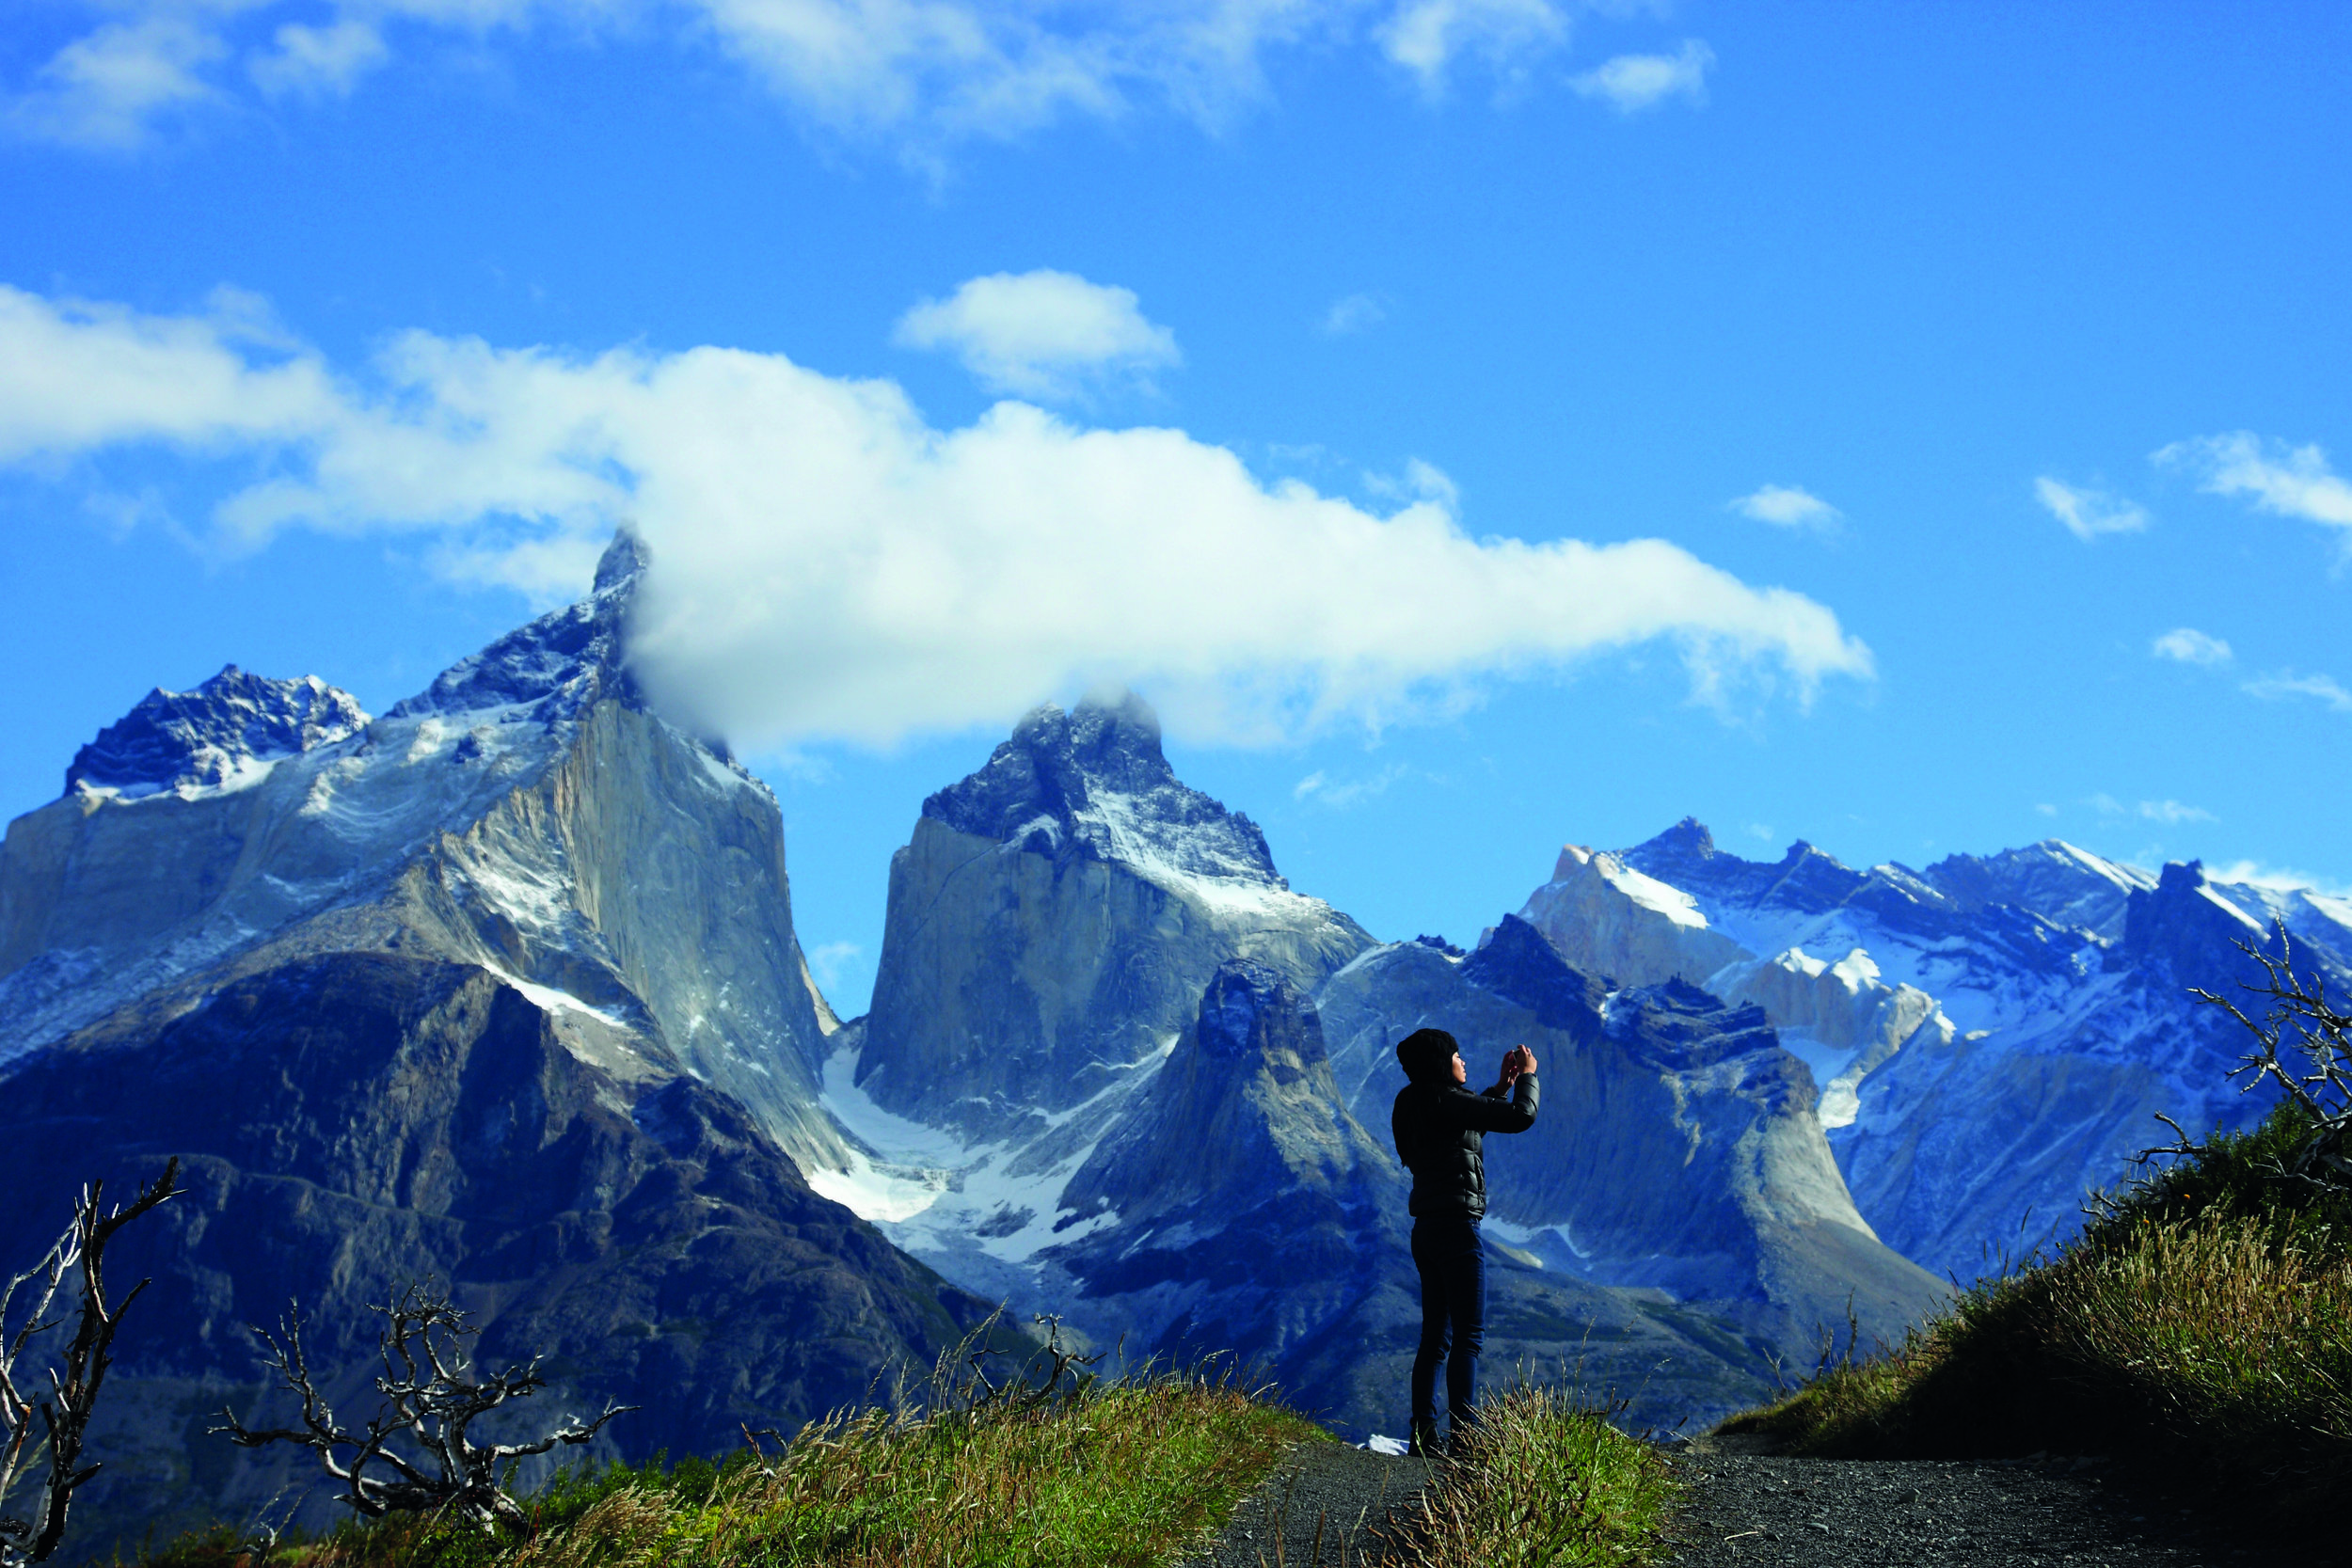 Copy of Excursiones_PN_Torres_del_Paine12.JPG